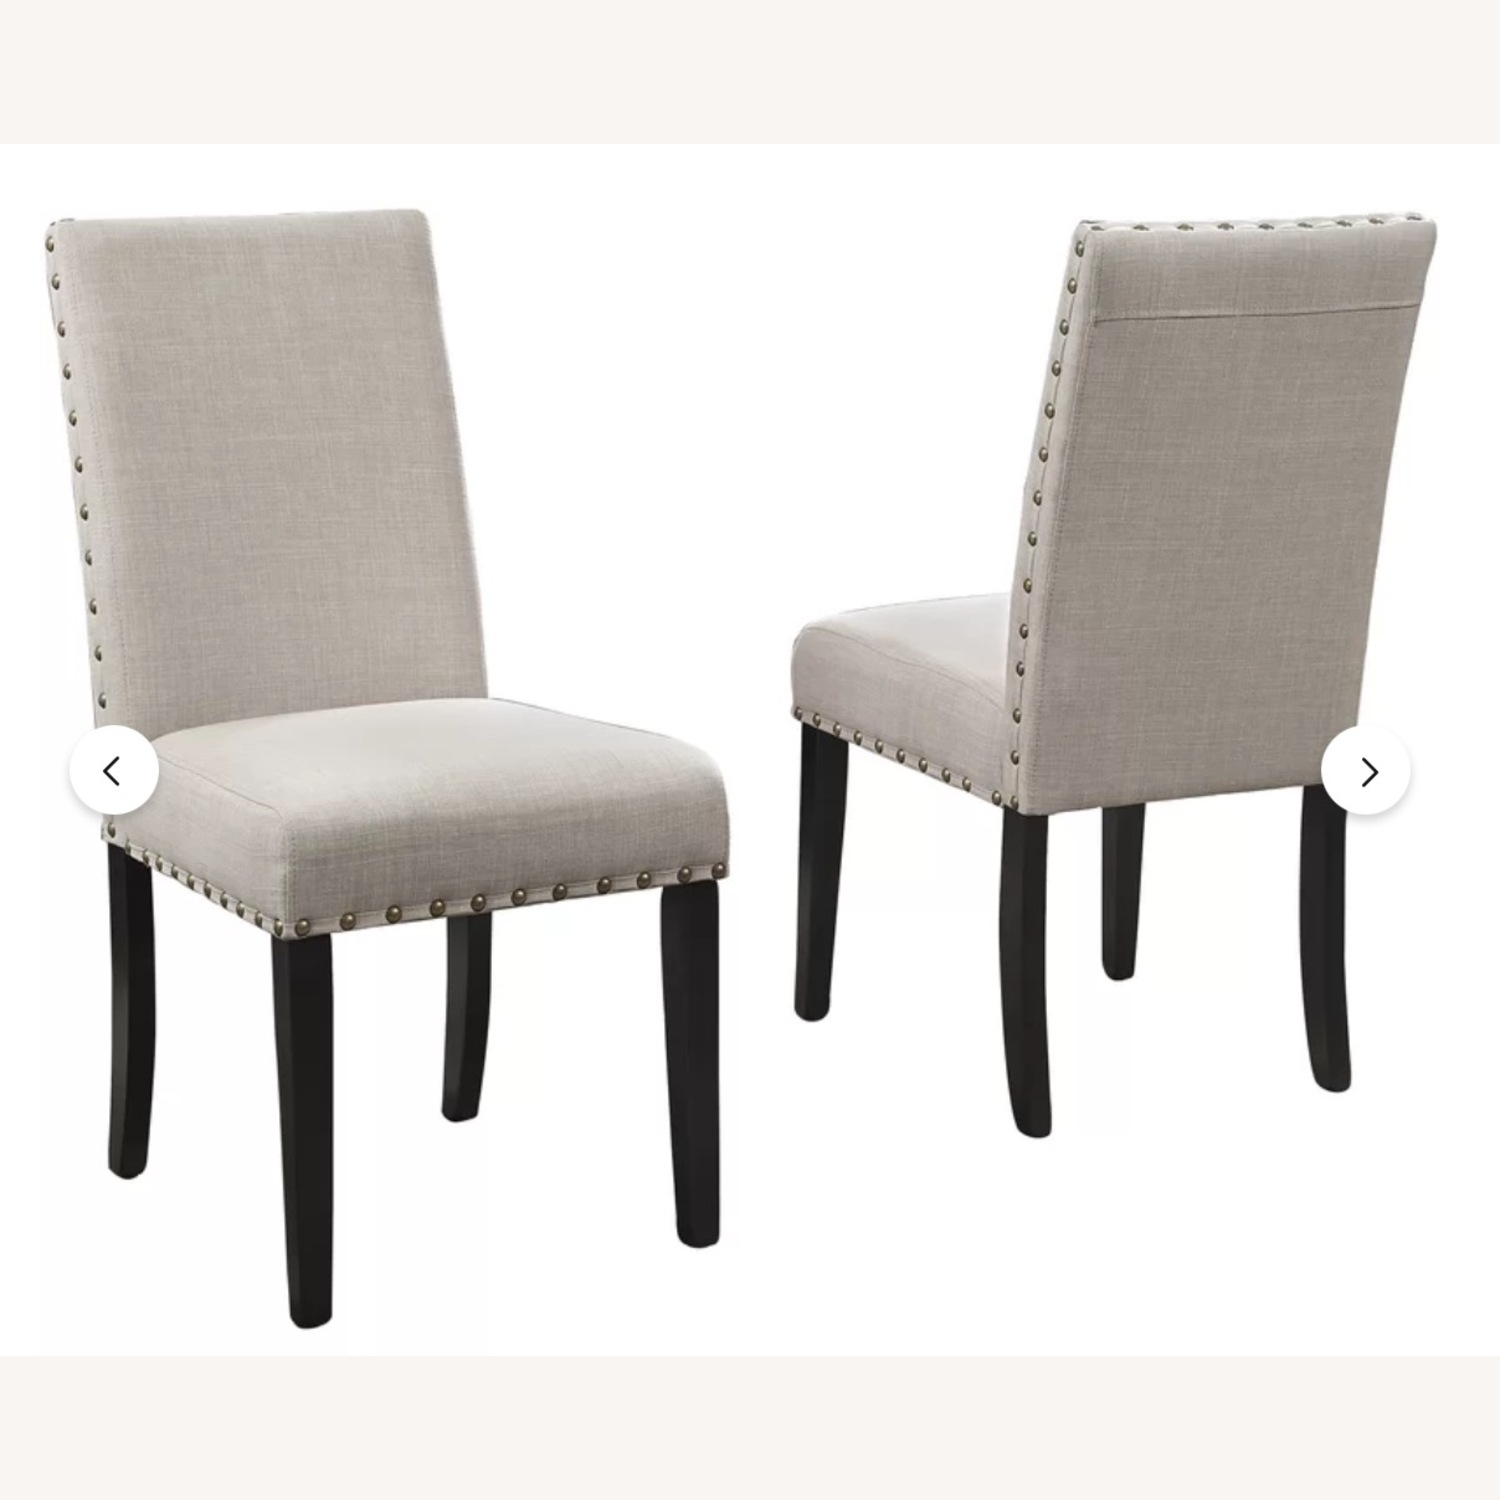 Wayfair Set of Gracie Oaks Upholstered Dining Chairs - image-6